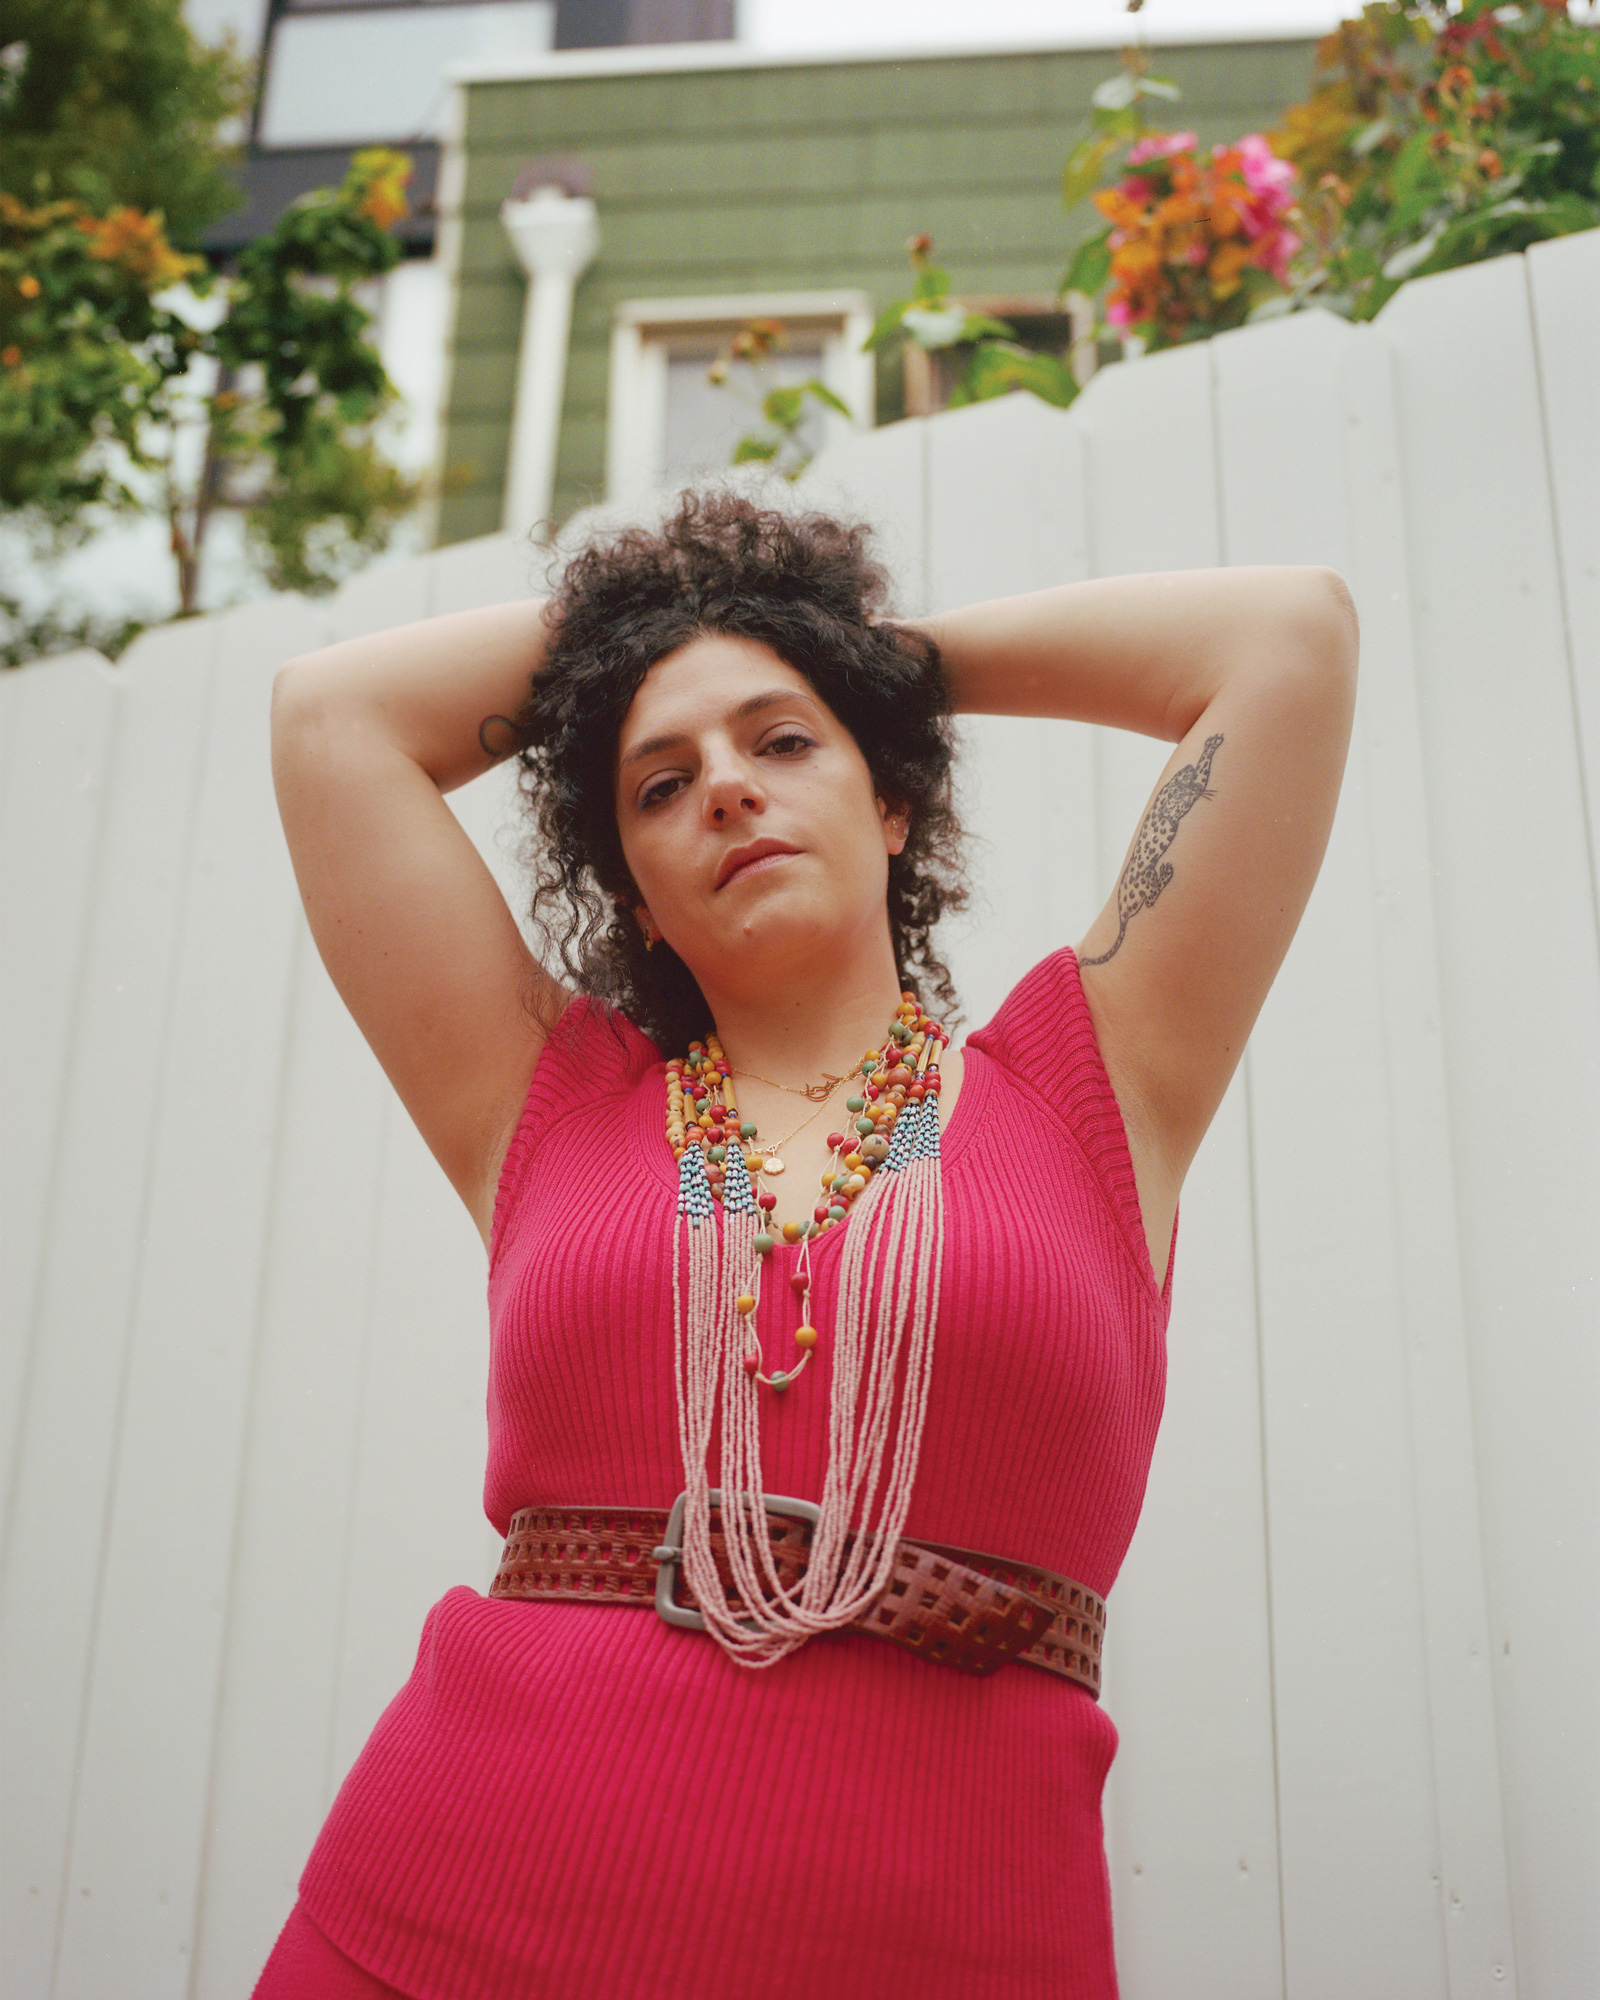 photo of Slow Factor founder, Céline Semaan, a Lebanese Canadian woman posing outside in front of a white fence, wearing a red knitted dress, colorful layered necklaces, and a brown belt, with her arms raised and resting behind her dark curly hair.